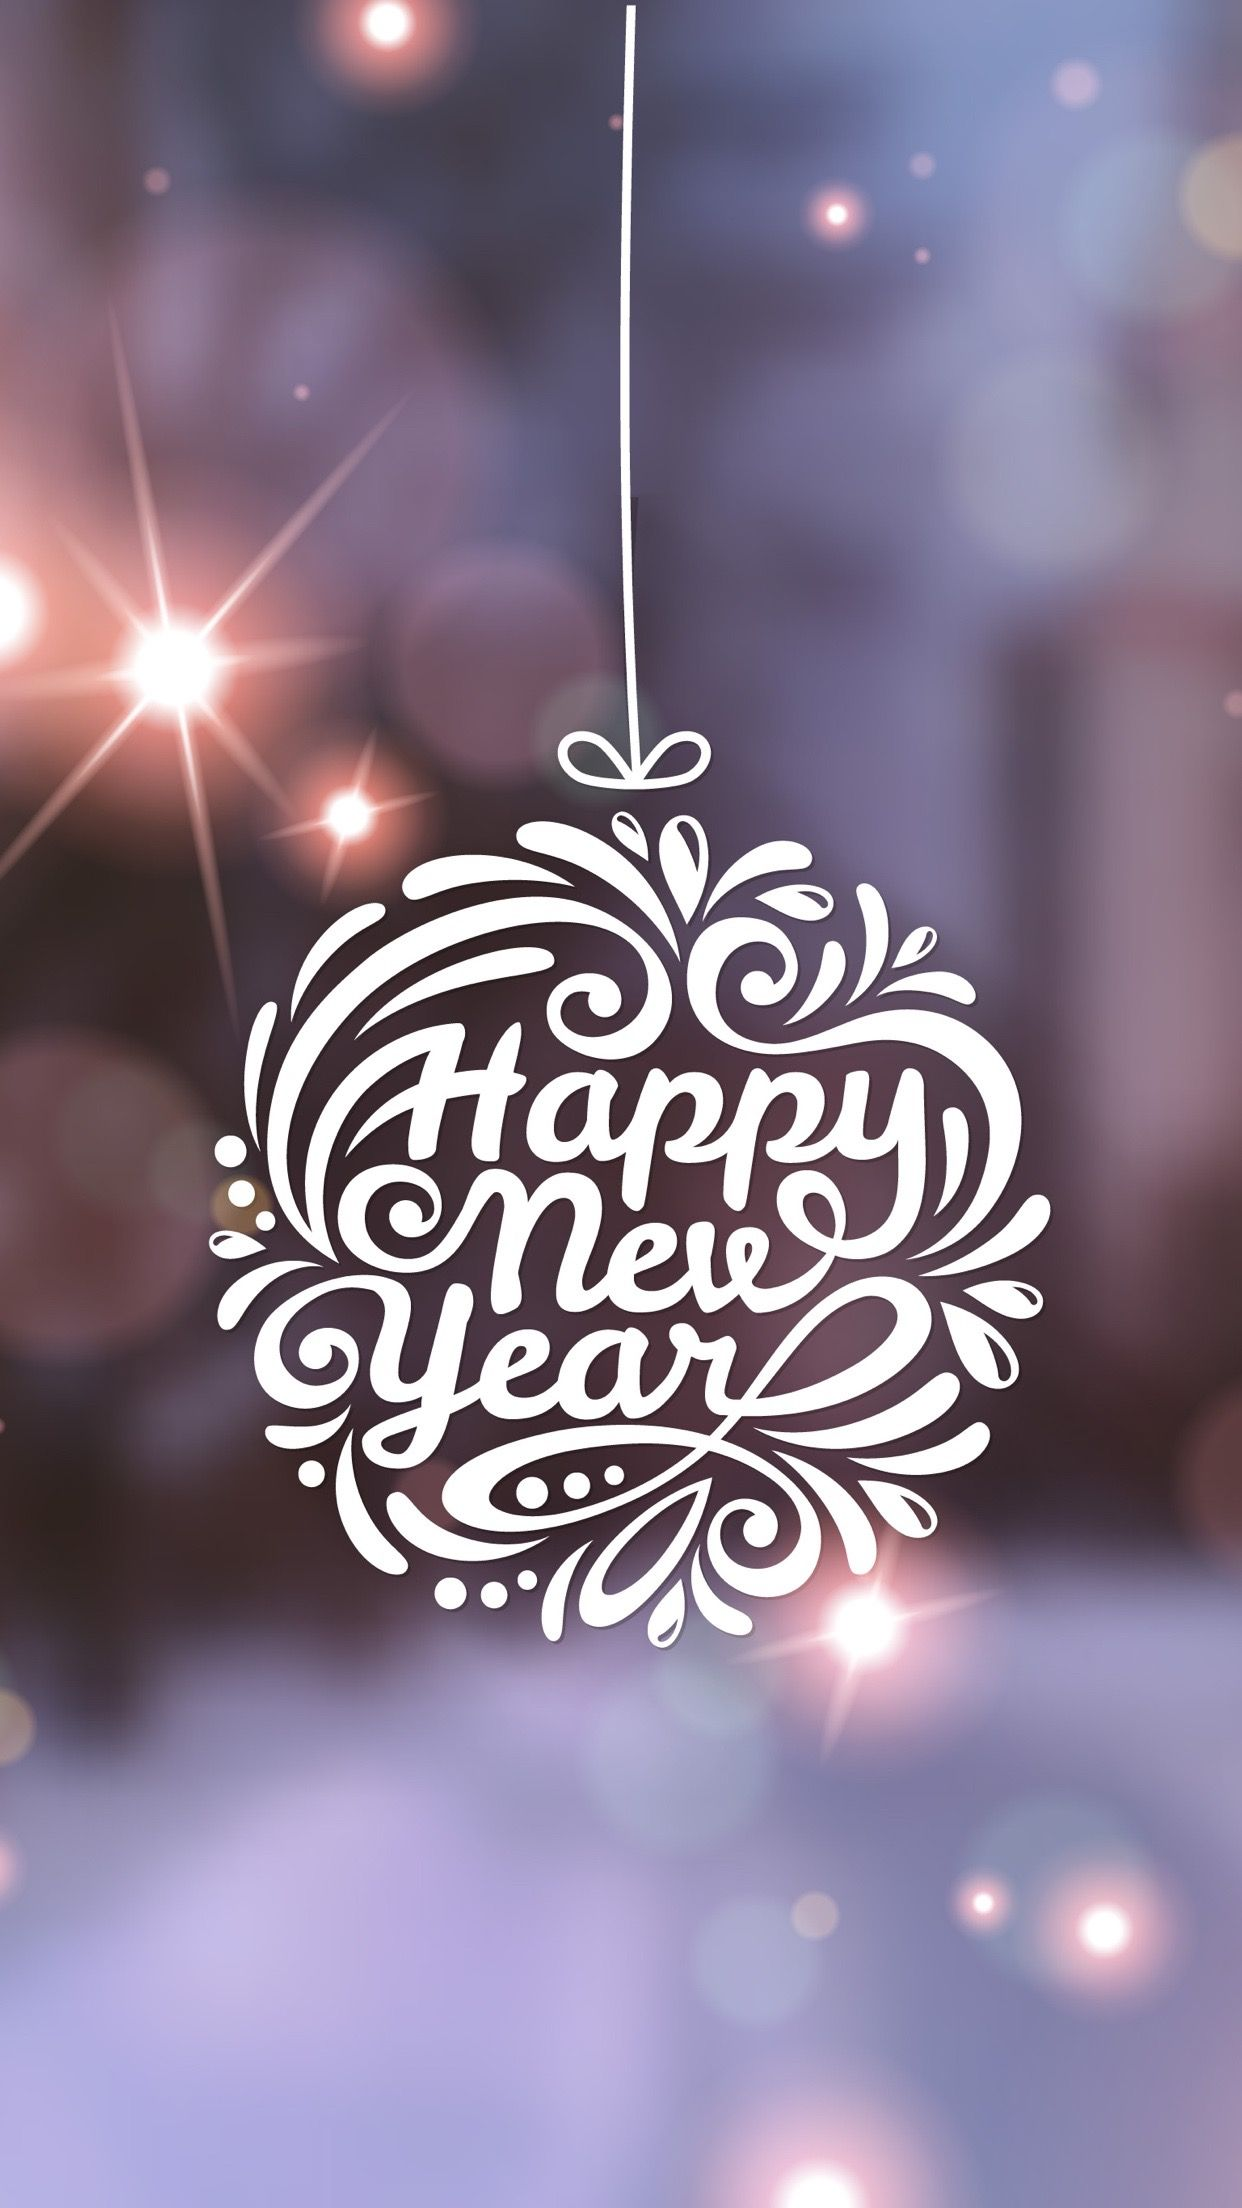 Download New Years Wallpaper Hd Backgrounds Download Itl Cat